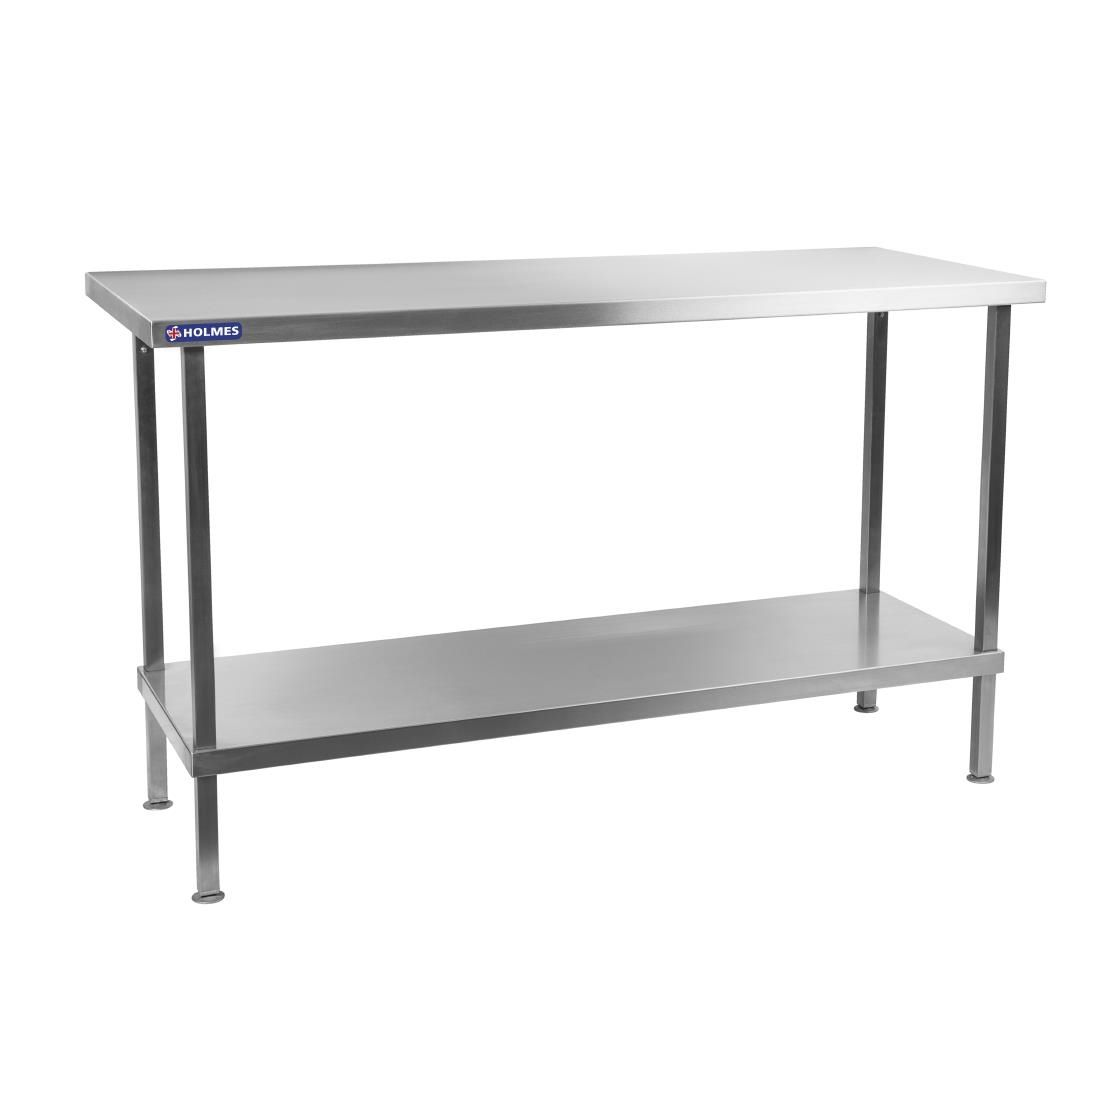 Holmes Stainless Steel Centre Table 600mm - DR041